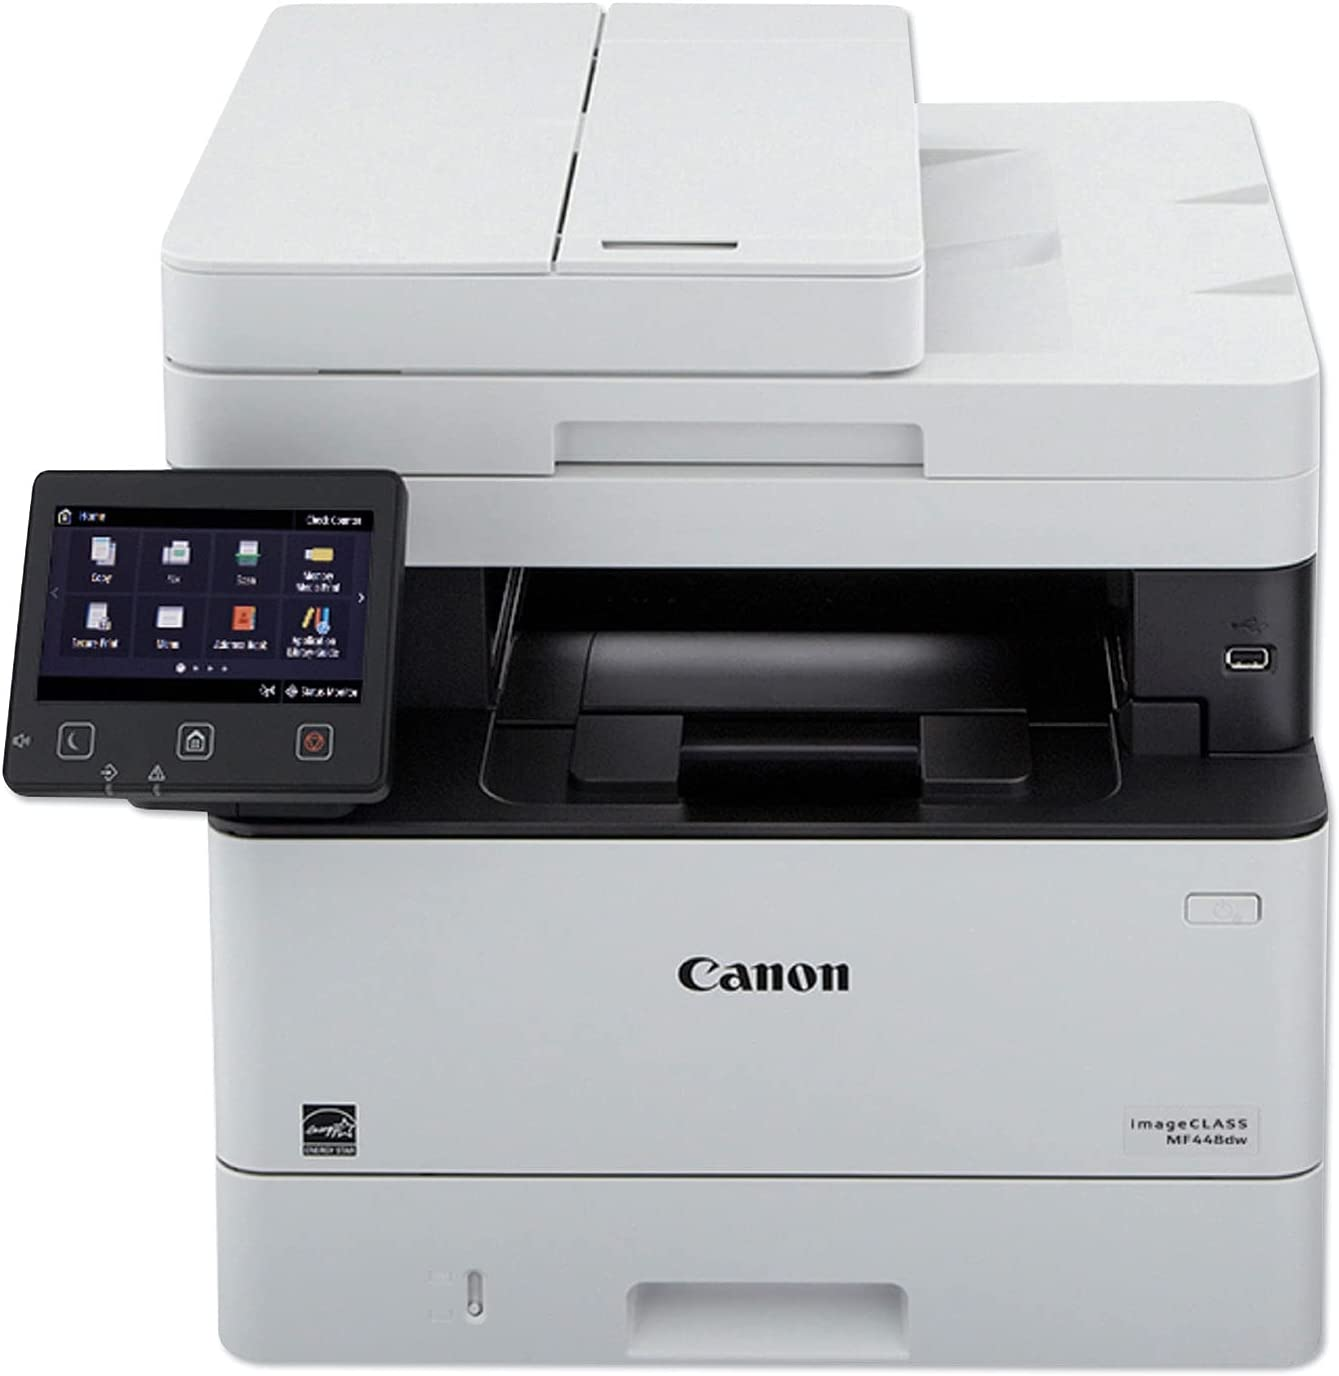 Canon imageCLASS Max 63% OFF MF448dw Finally popular brand - All One in Wireless Mobile-Ready Du